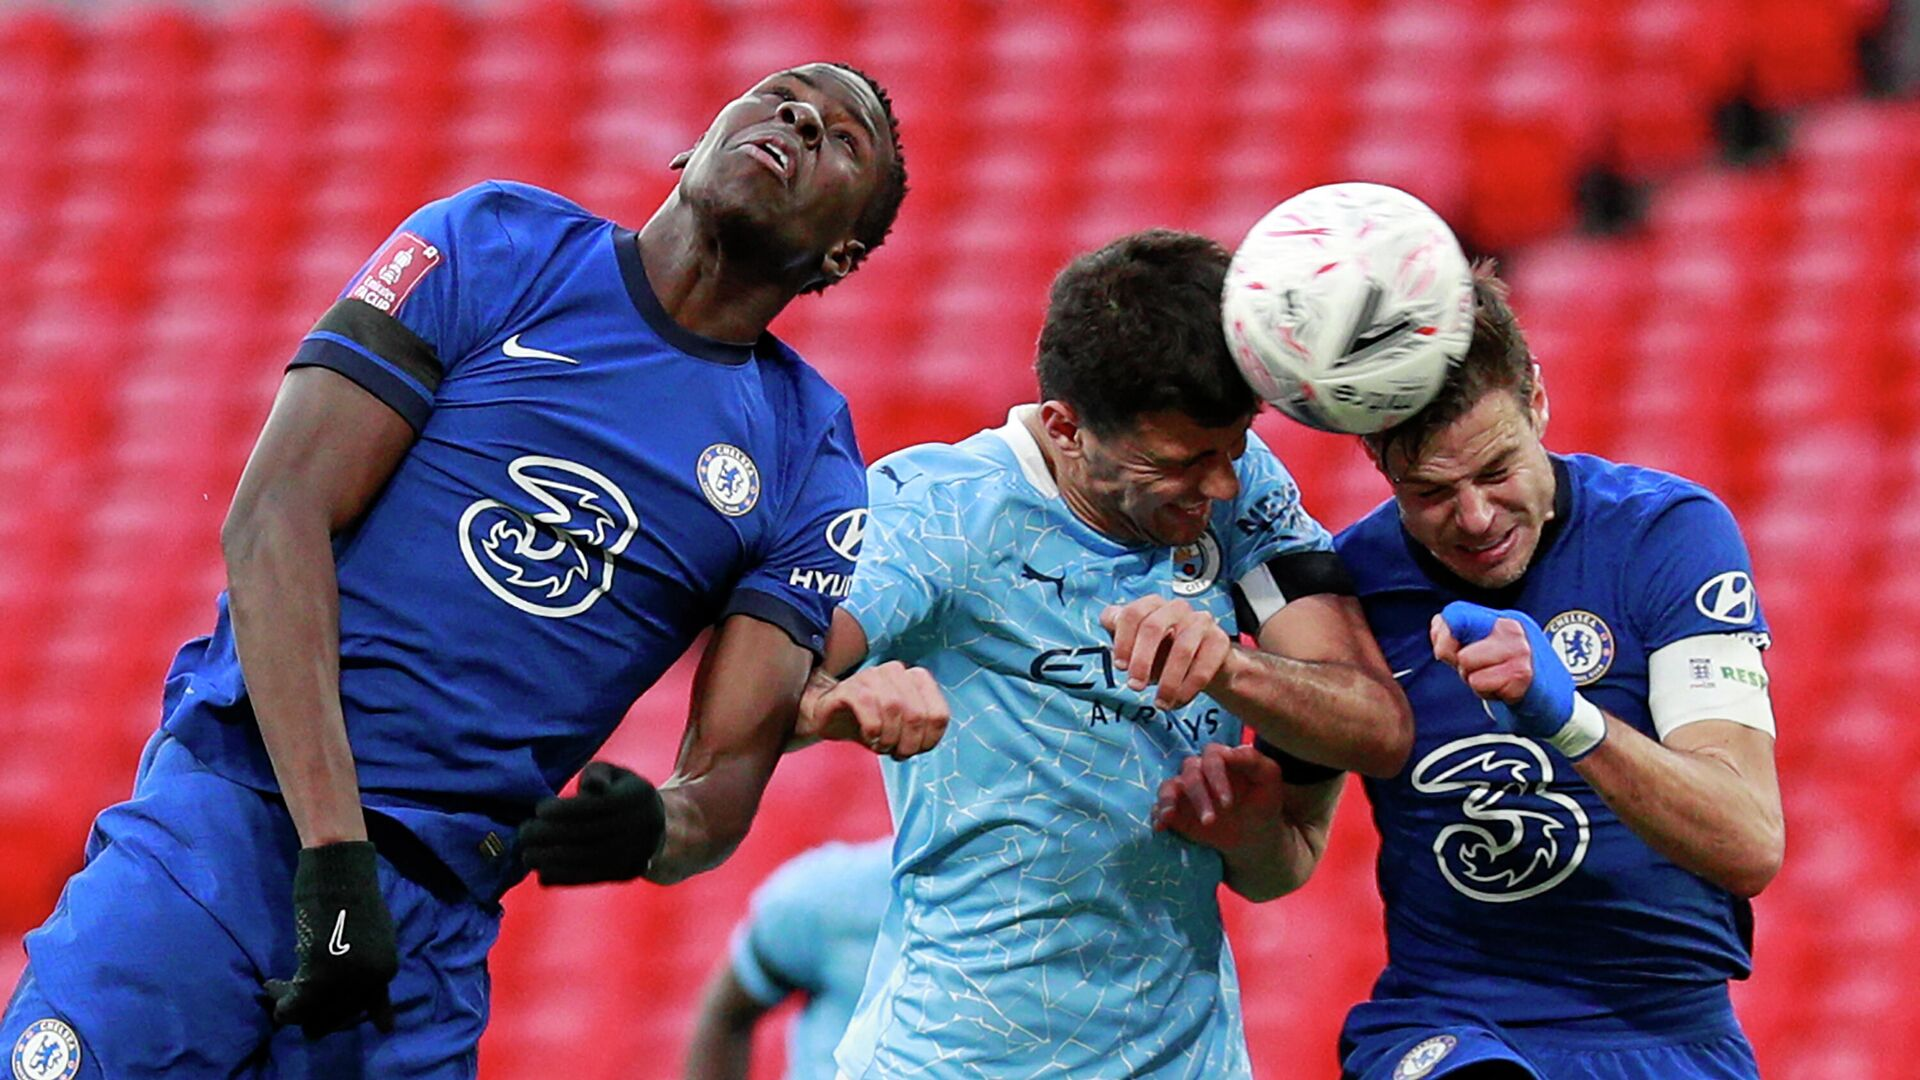 Manchester City's Spanish midfielder Rodrigo (C) vies with Chelsea's French defender Kurt Zouma (L) and Chelsea's Spanish defender Cesar Azpilicueta (R) during the English FA Cup semi-final football match between Chelsea and Manchester City at Wembley Stadium in north west London on April 17, 2021. (Photo by Ian Walton / POOL / AFP) / RESTRICTED TO EDITORIAL USE. No use with unauthorized audio, video, data, fixture lists, club/league logos or 'live' services. Online in-match use limited to 120 images. An additional 40 images may be used in extra time. No video emulation. Social media in-match use limited to 120 images. An additional 40 images may be used in extra time. No use in betting publications, games or single club/league/player publications. /  - РИА Новости, 1920, 17.04.2021